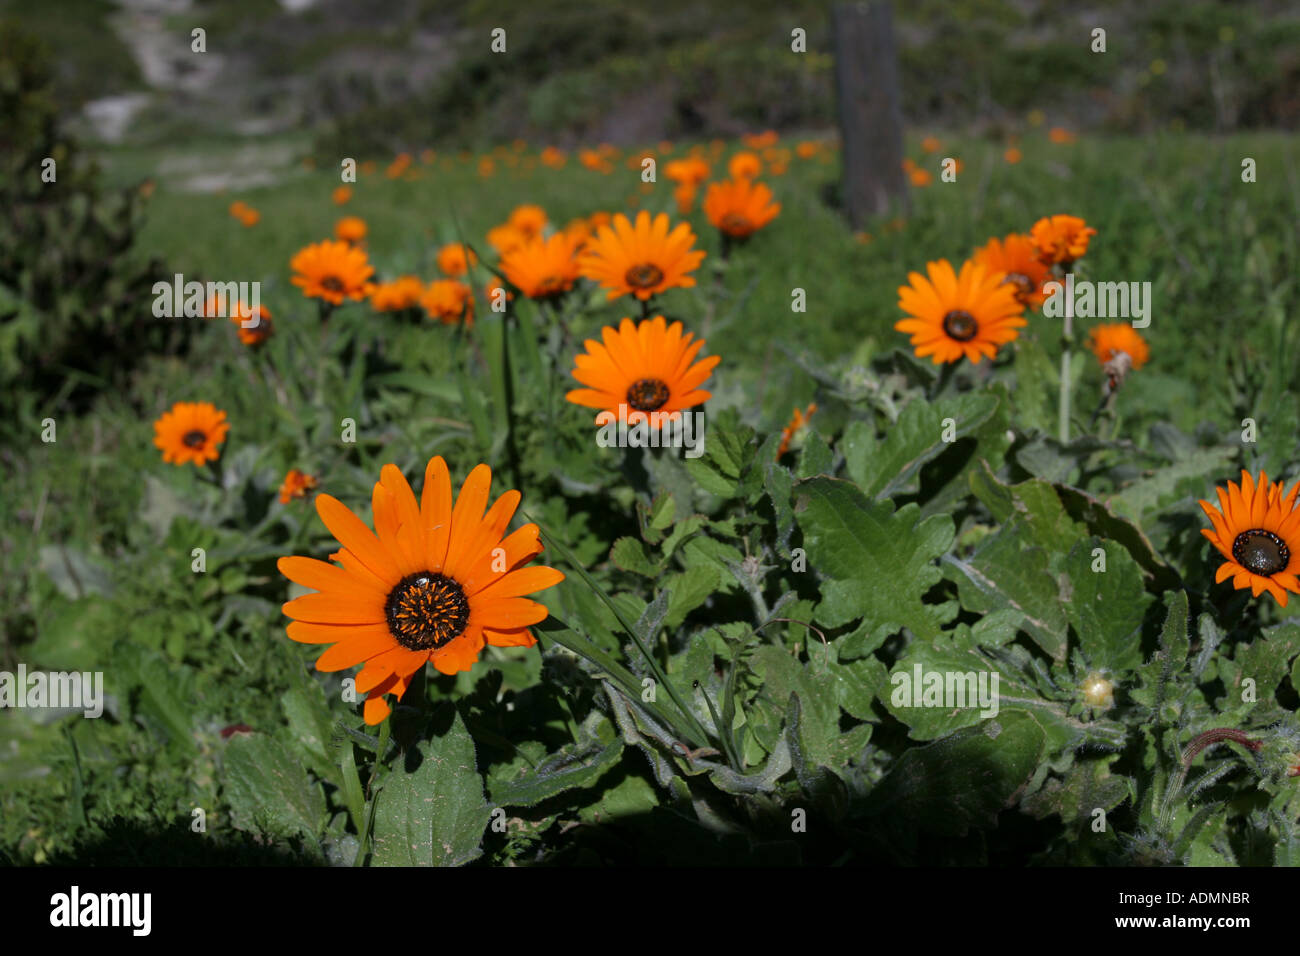 Wild Spring flowers - daisies - on the West Coast of South Africa. - Stock Image